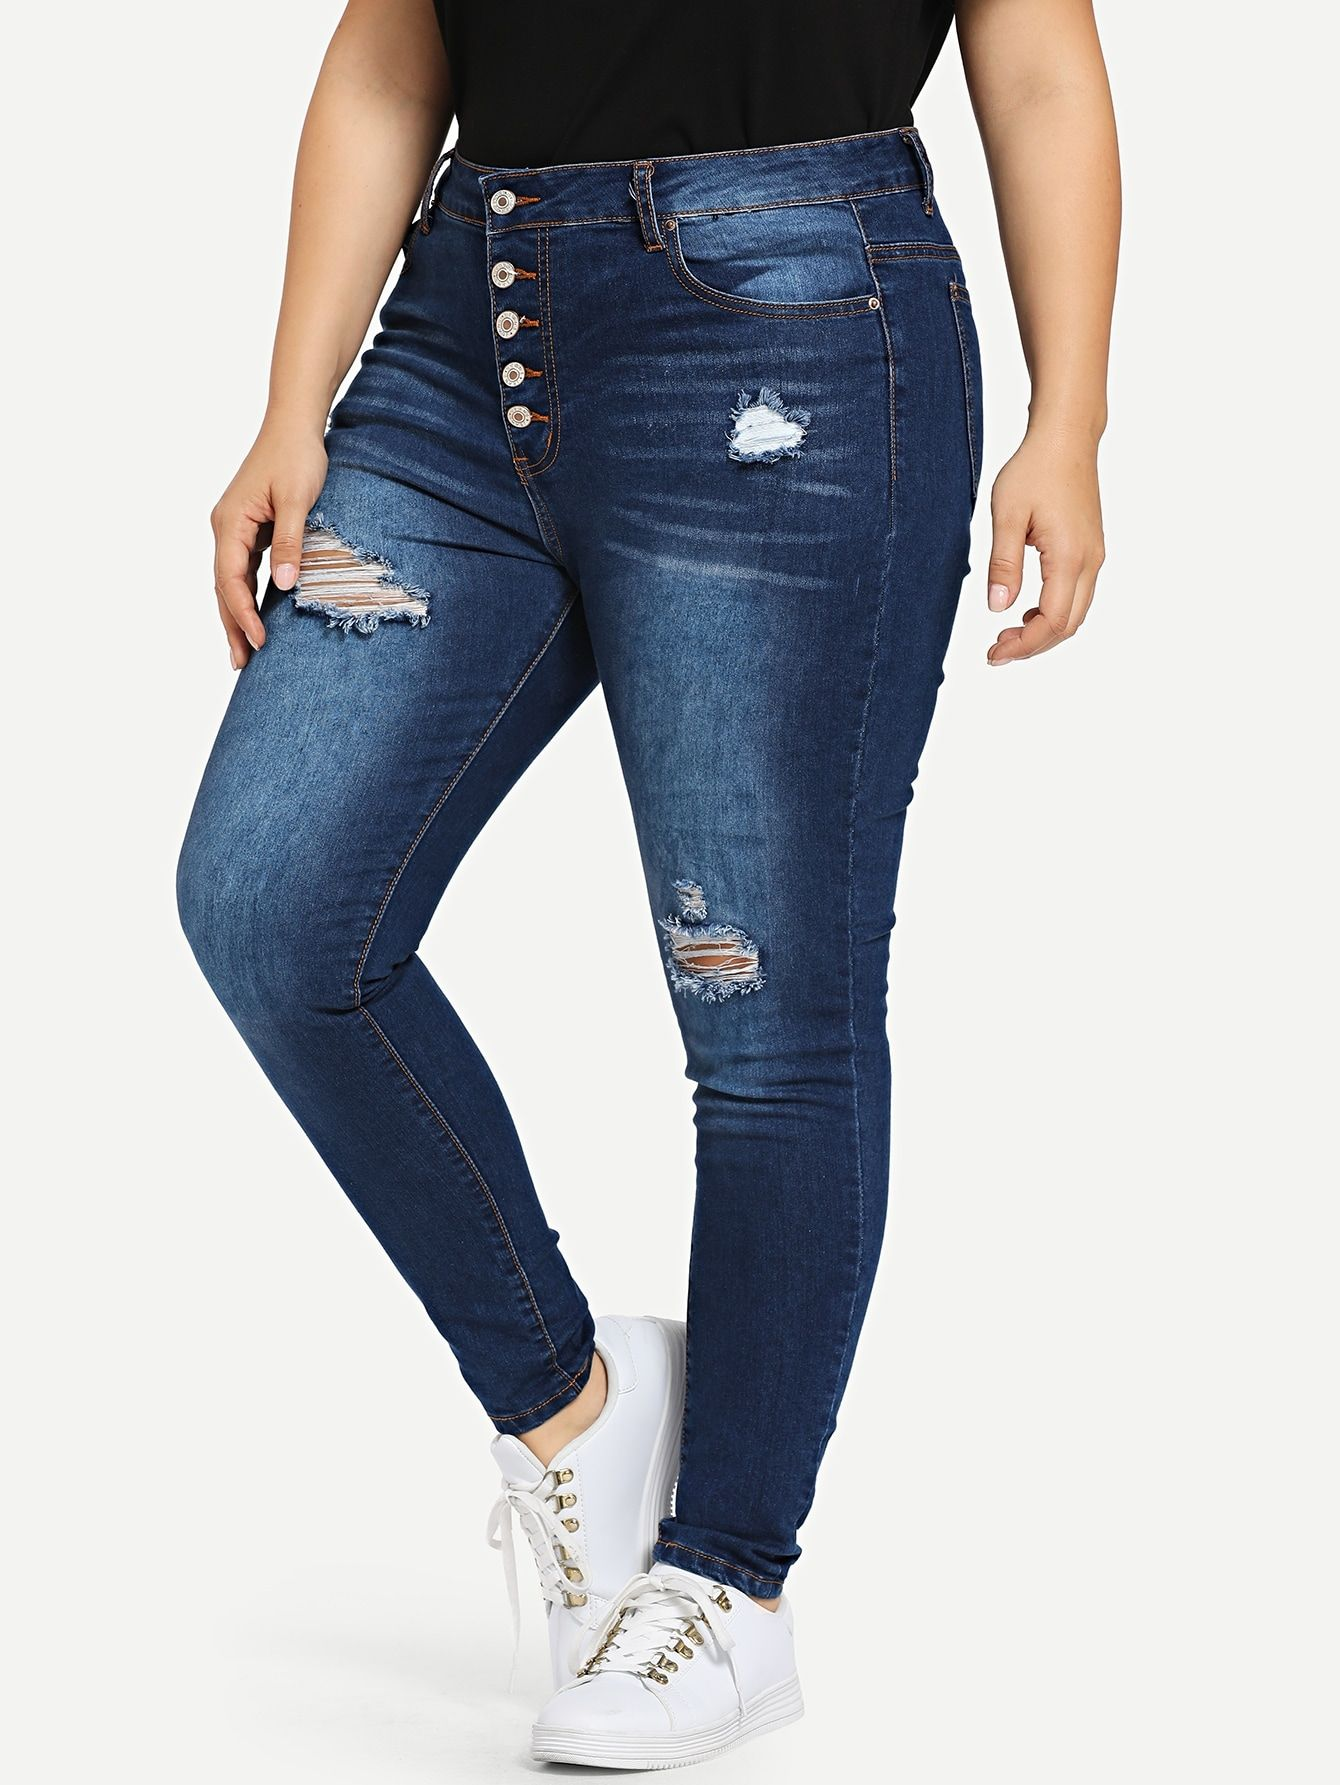 Ad Plus Bleach Wash Ripped Buttoned Jeans Tags Casual Blue Plain Long Skinny Button Pocket Ripped Zipp Tamano Extra Skinny Pantalones Vaqueros Rotos